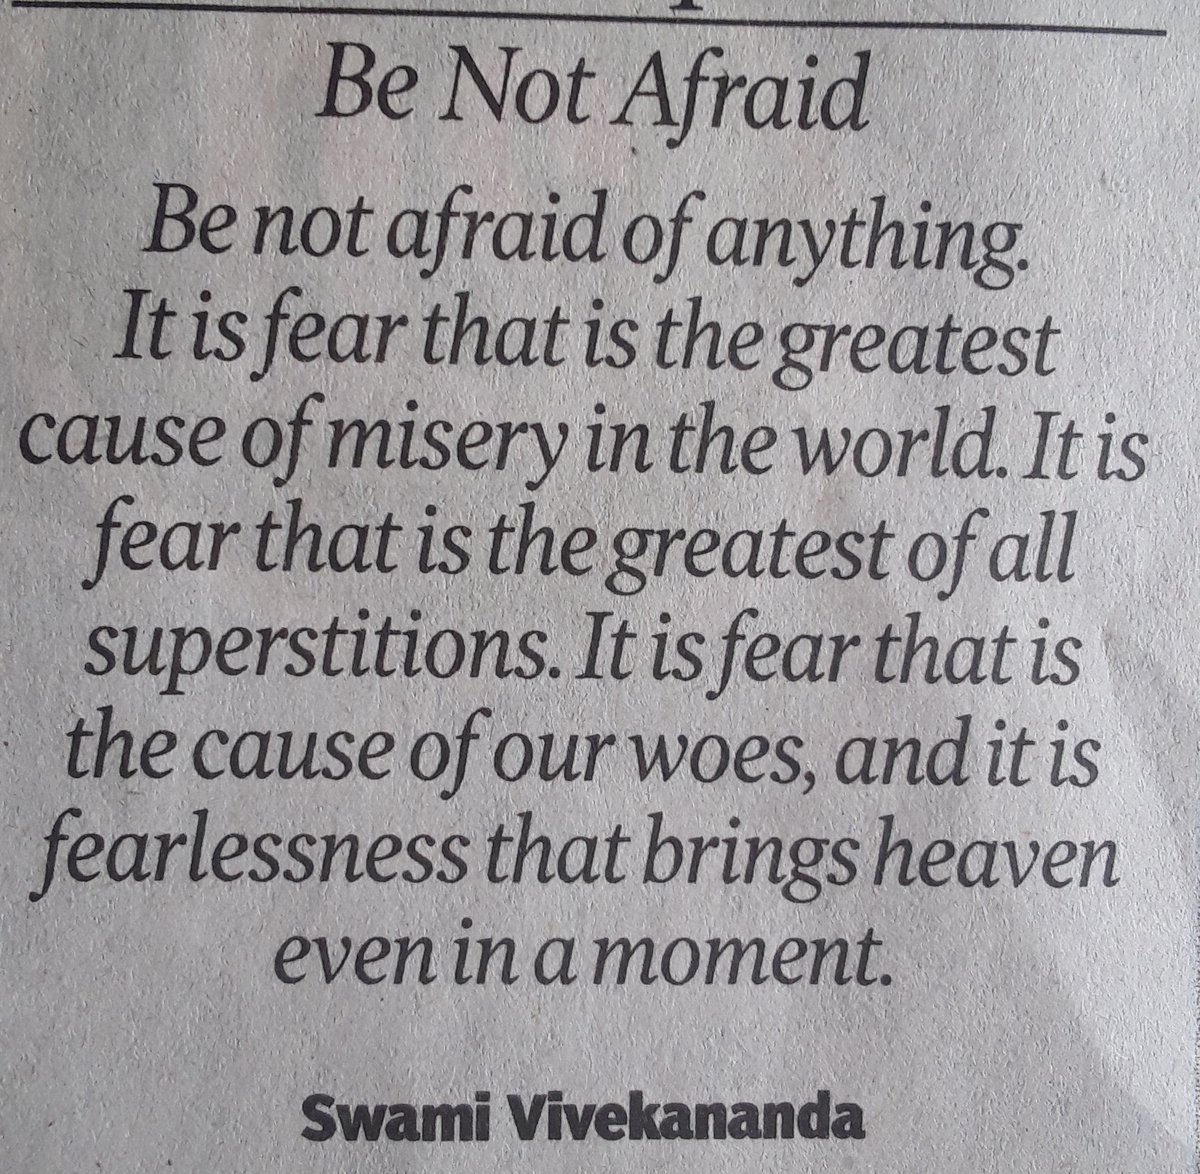 @timesofindia You won't die of Covid You will die of Fear Why Fear when i'm with you #LoveAndJoy 💕